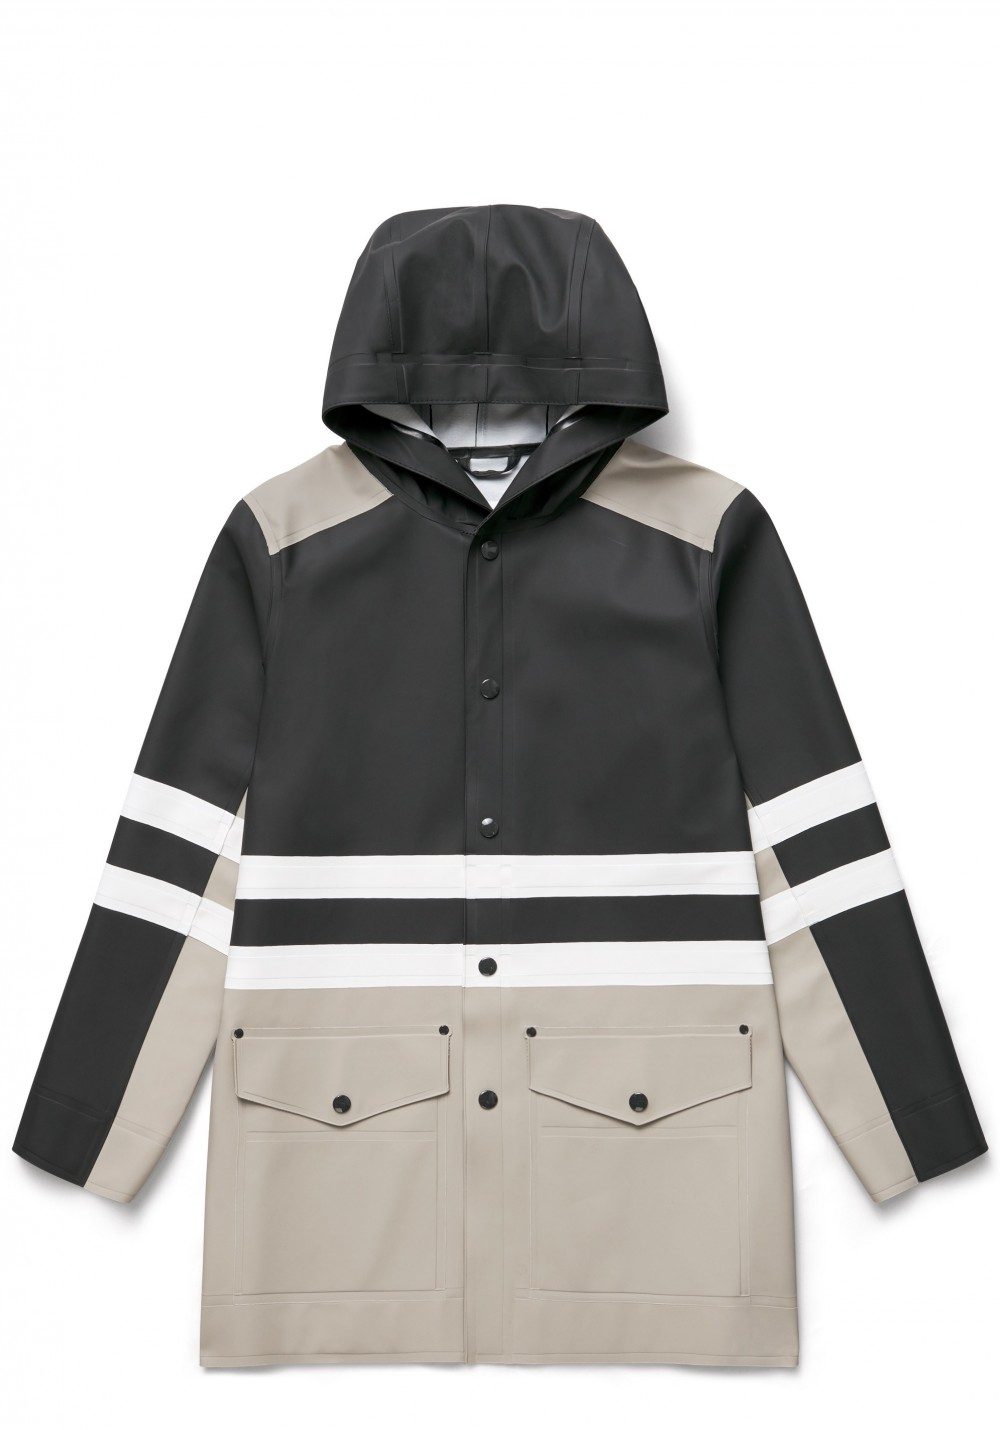 04 Stutterheim for Marni SS18_Man_StripeCoat_BlackMulti_Product